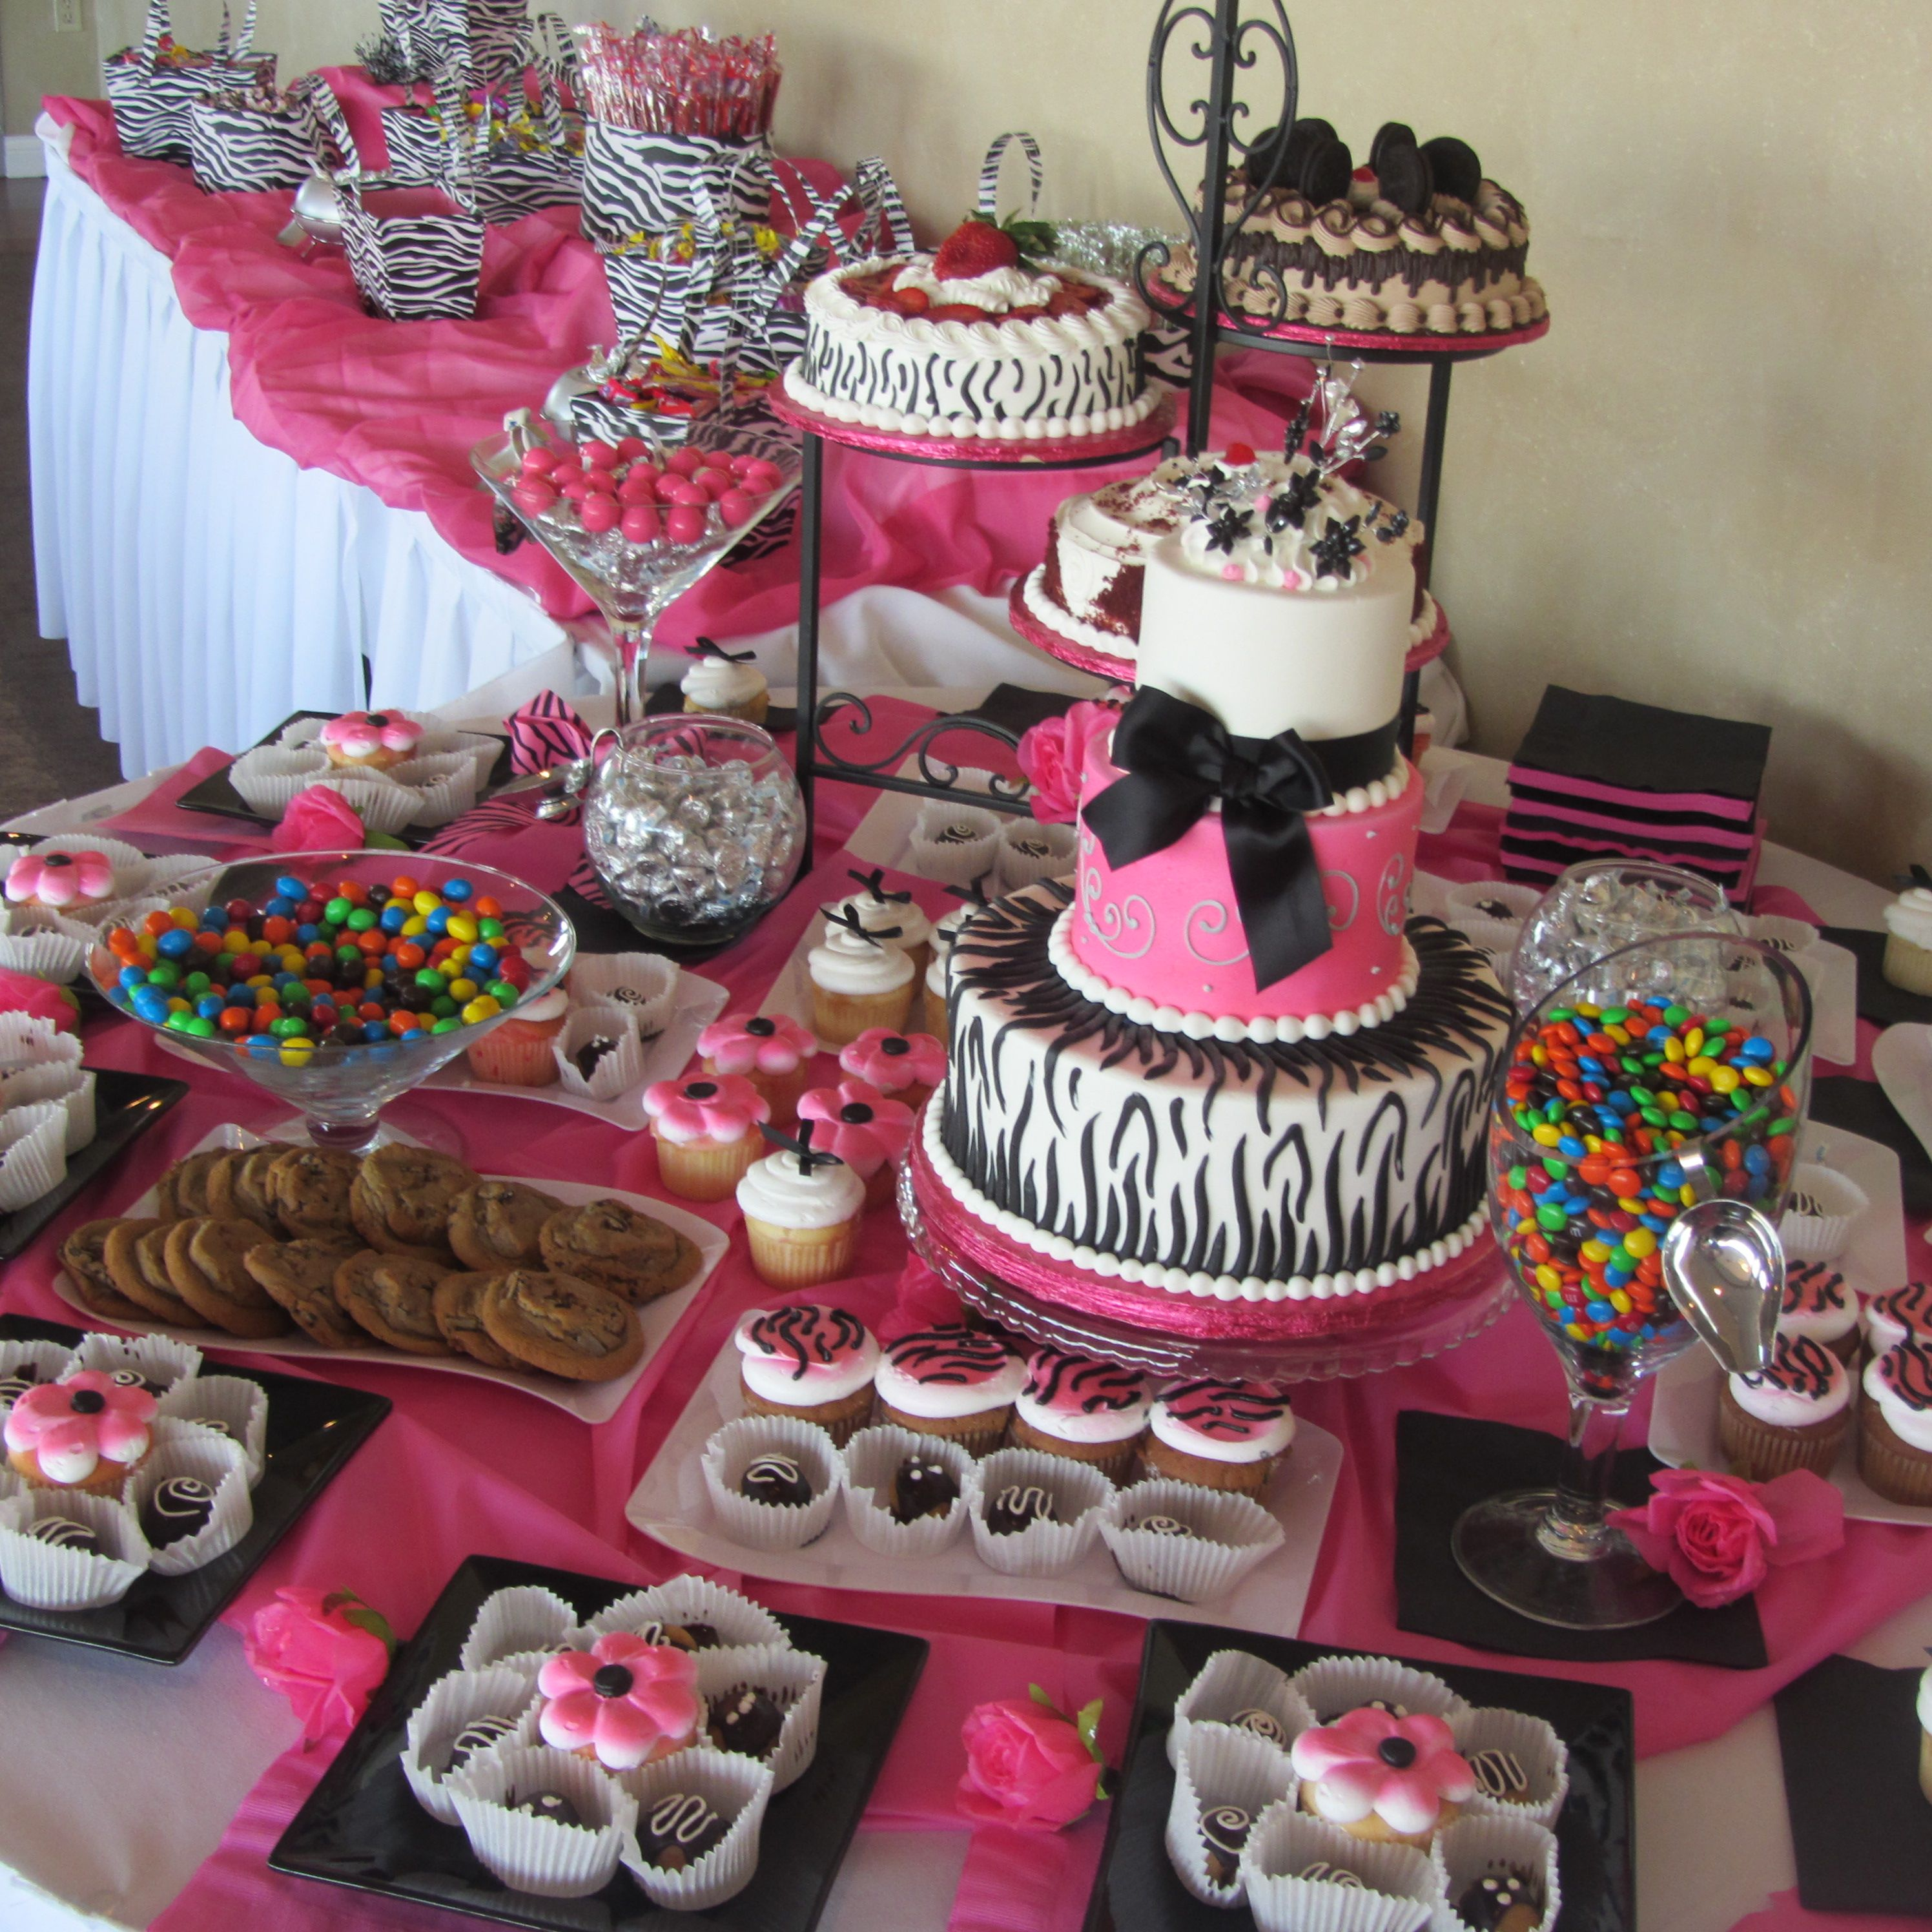 Inexpensive Table Decorations Chocolate Party Pink: cheap table decoration ideas